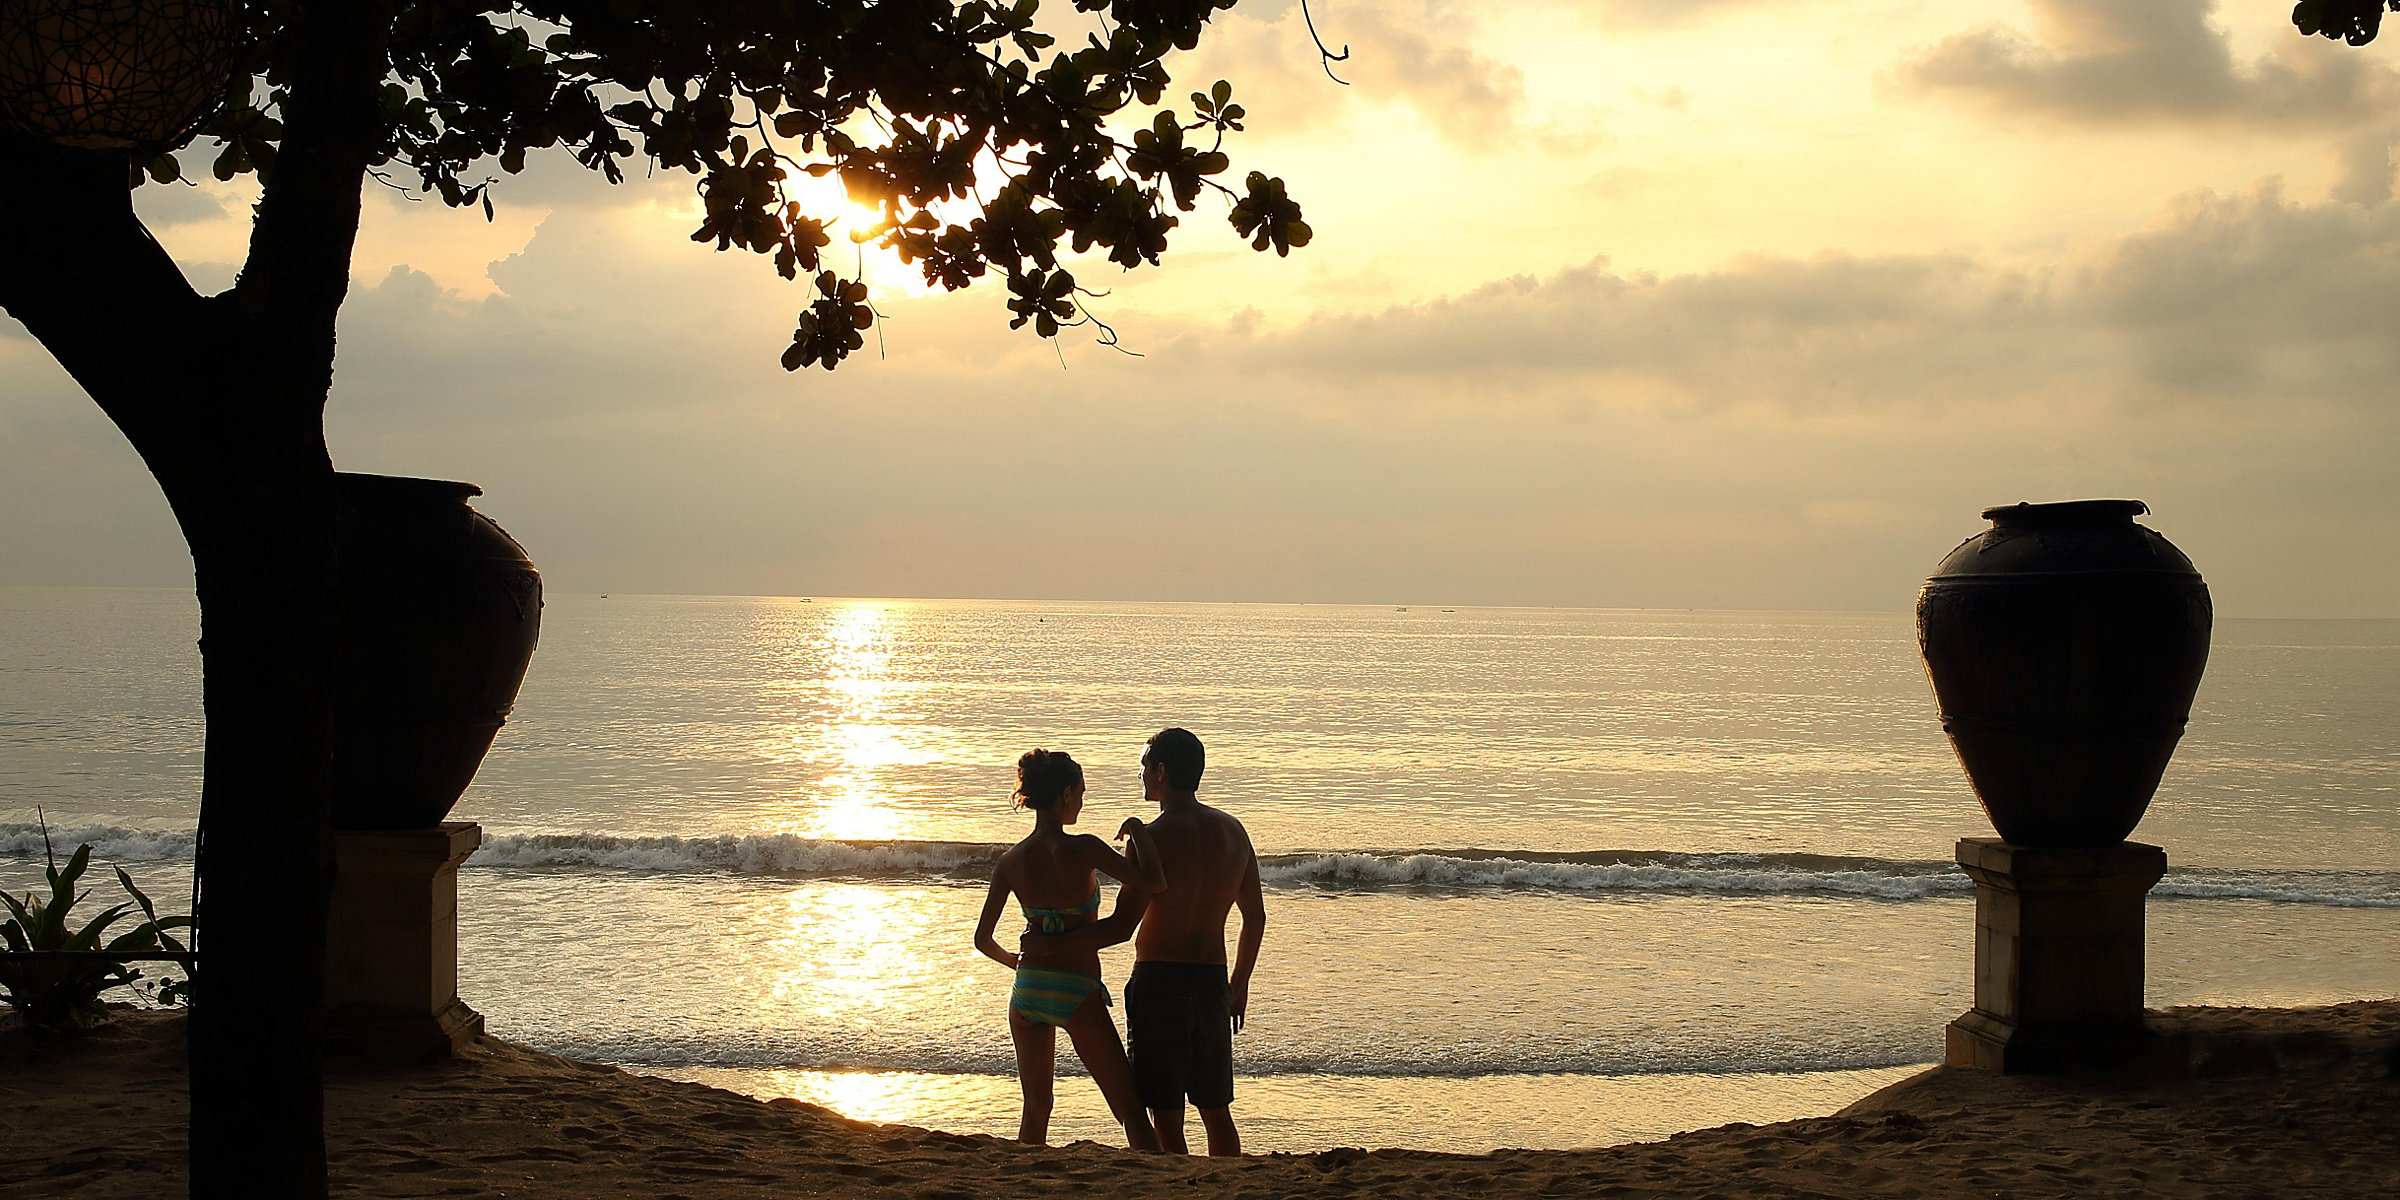 Time In Bali Am Or Pm